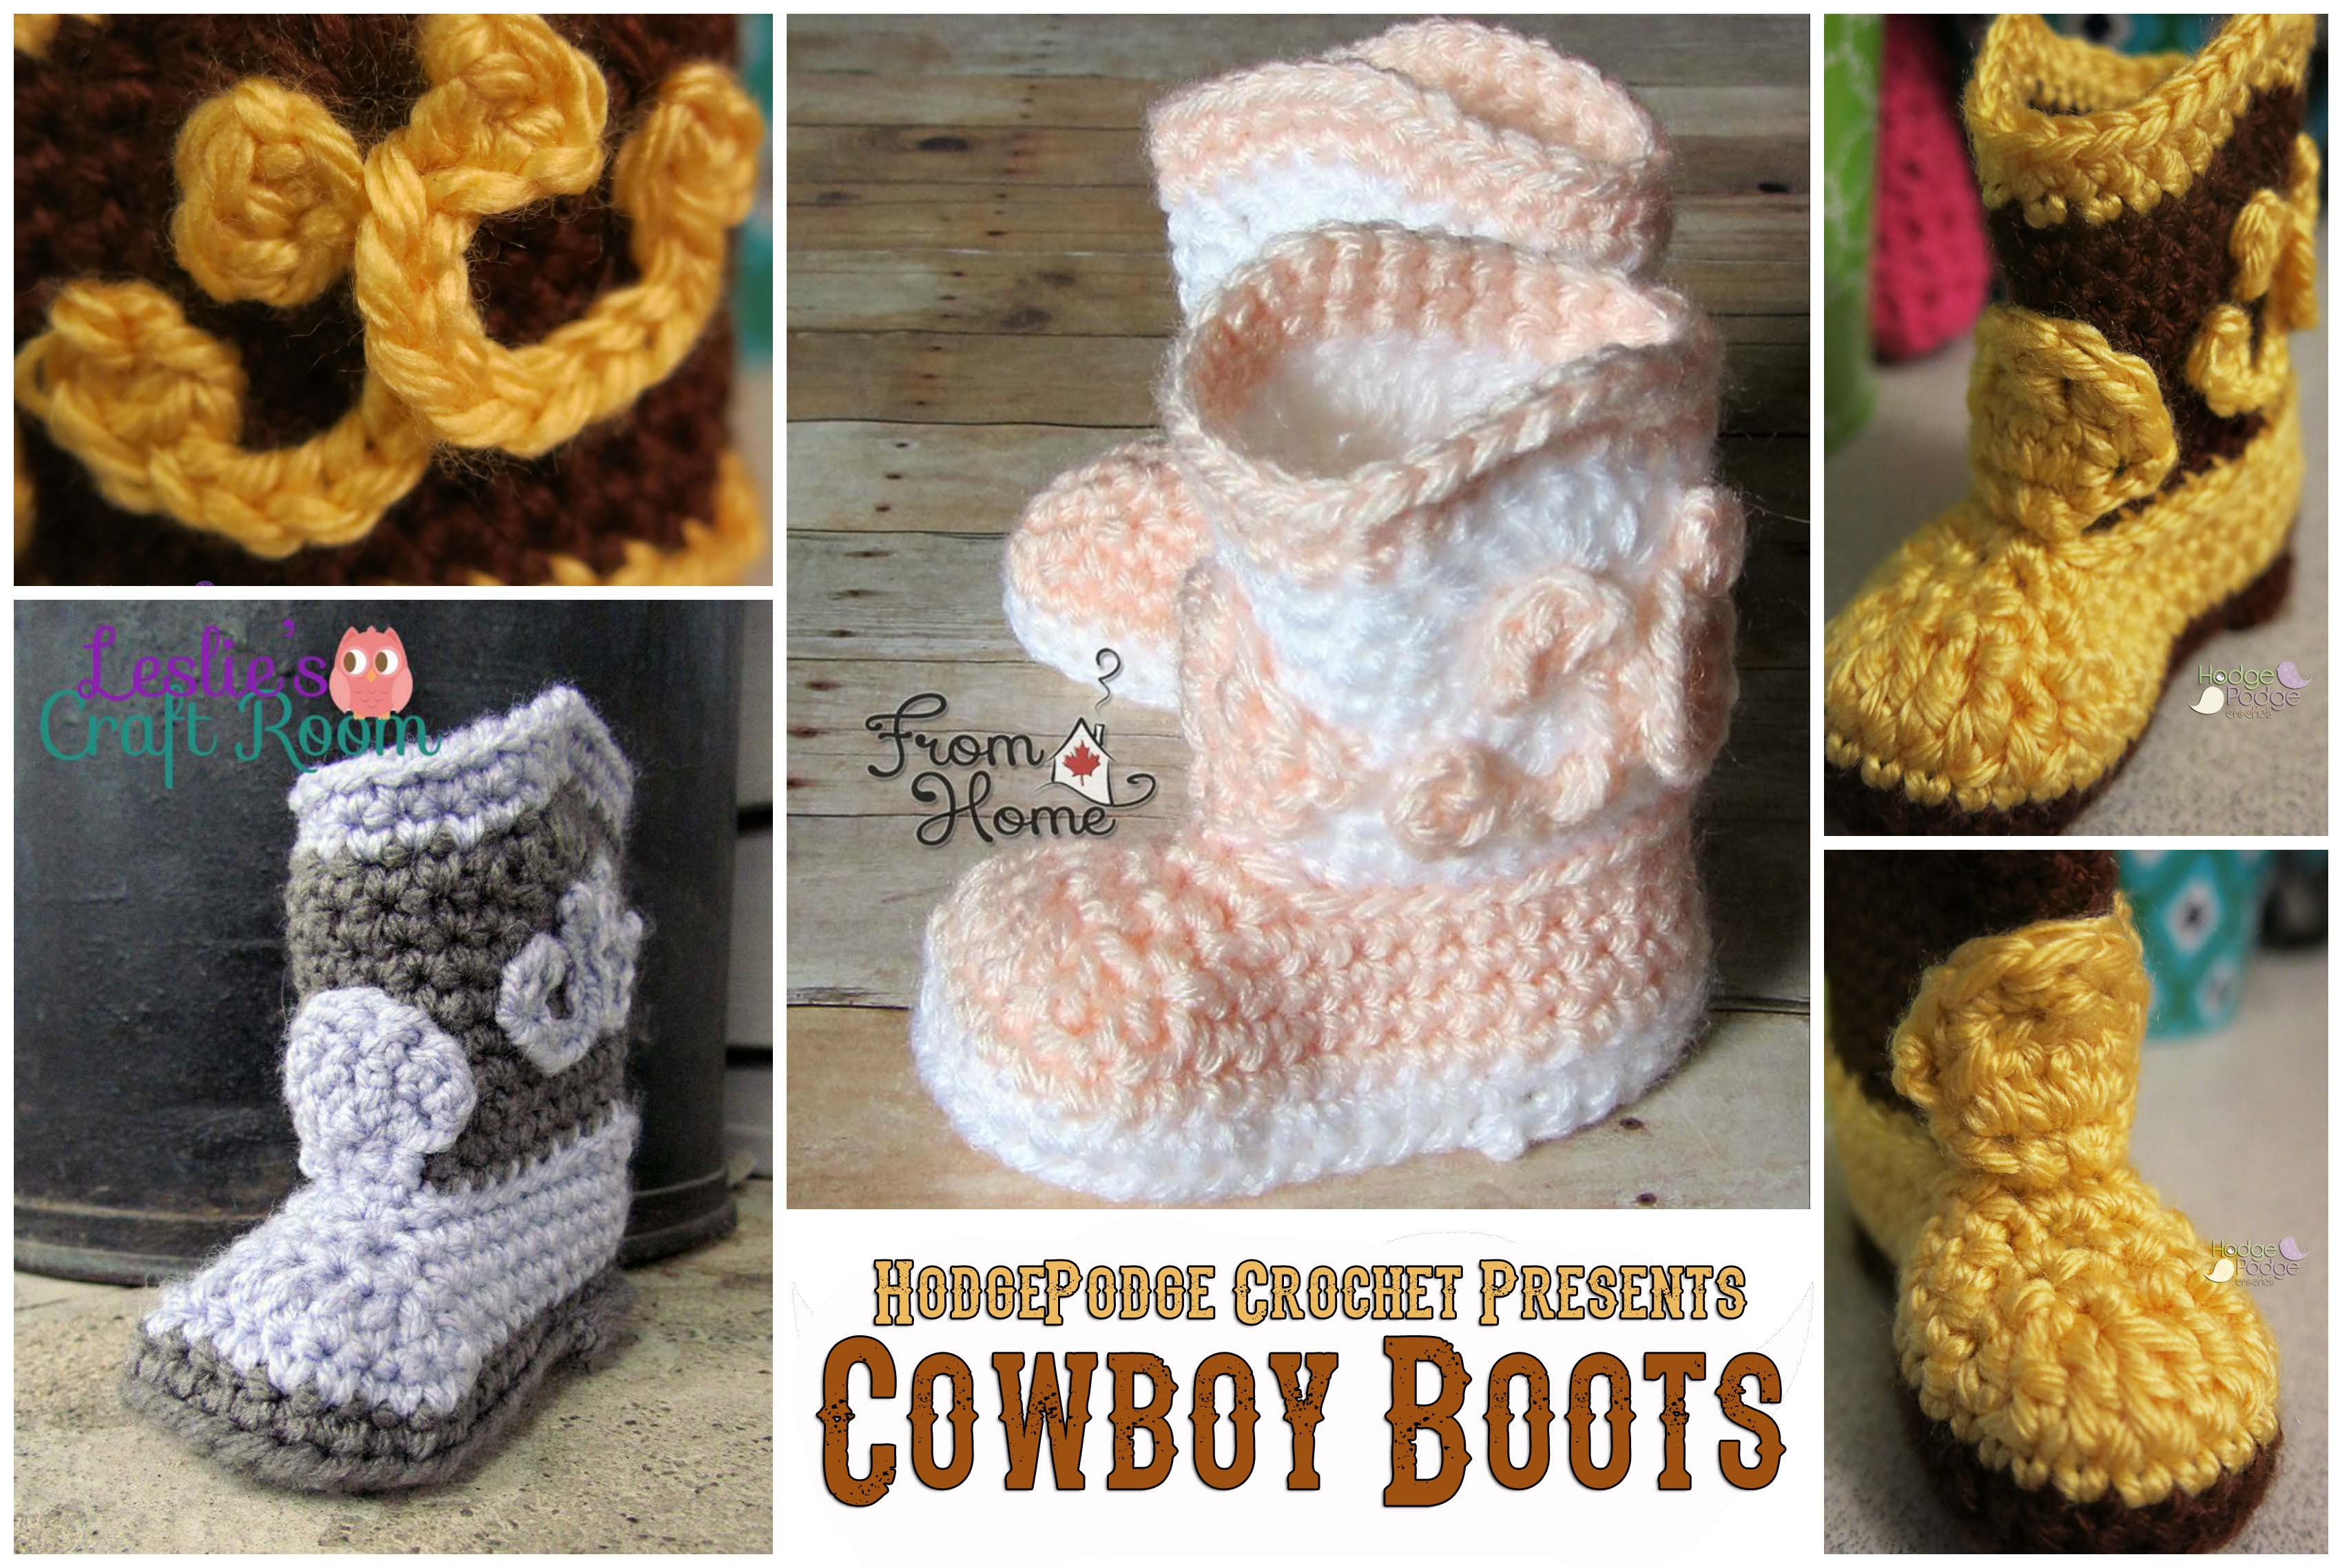 Cowboy Boots Revisited!